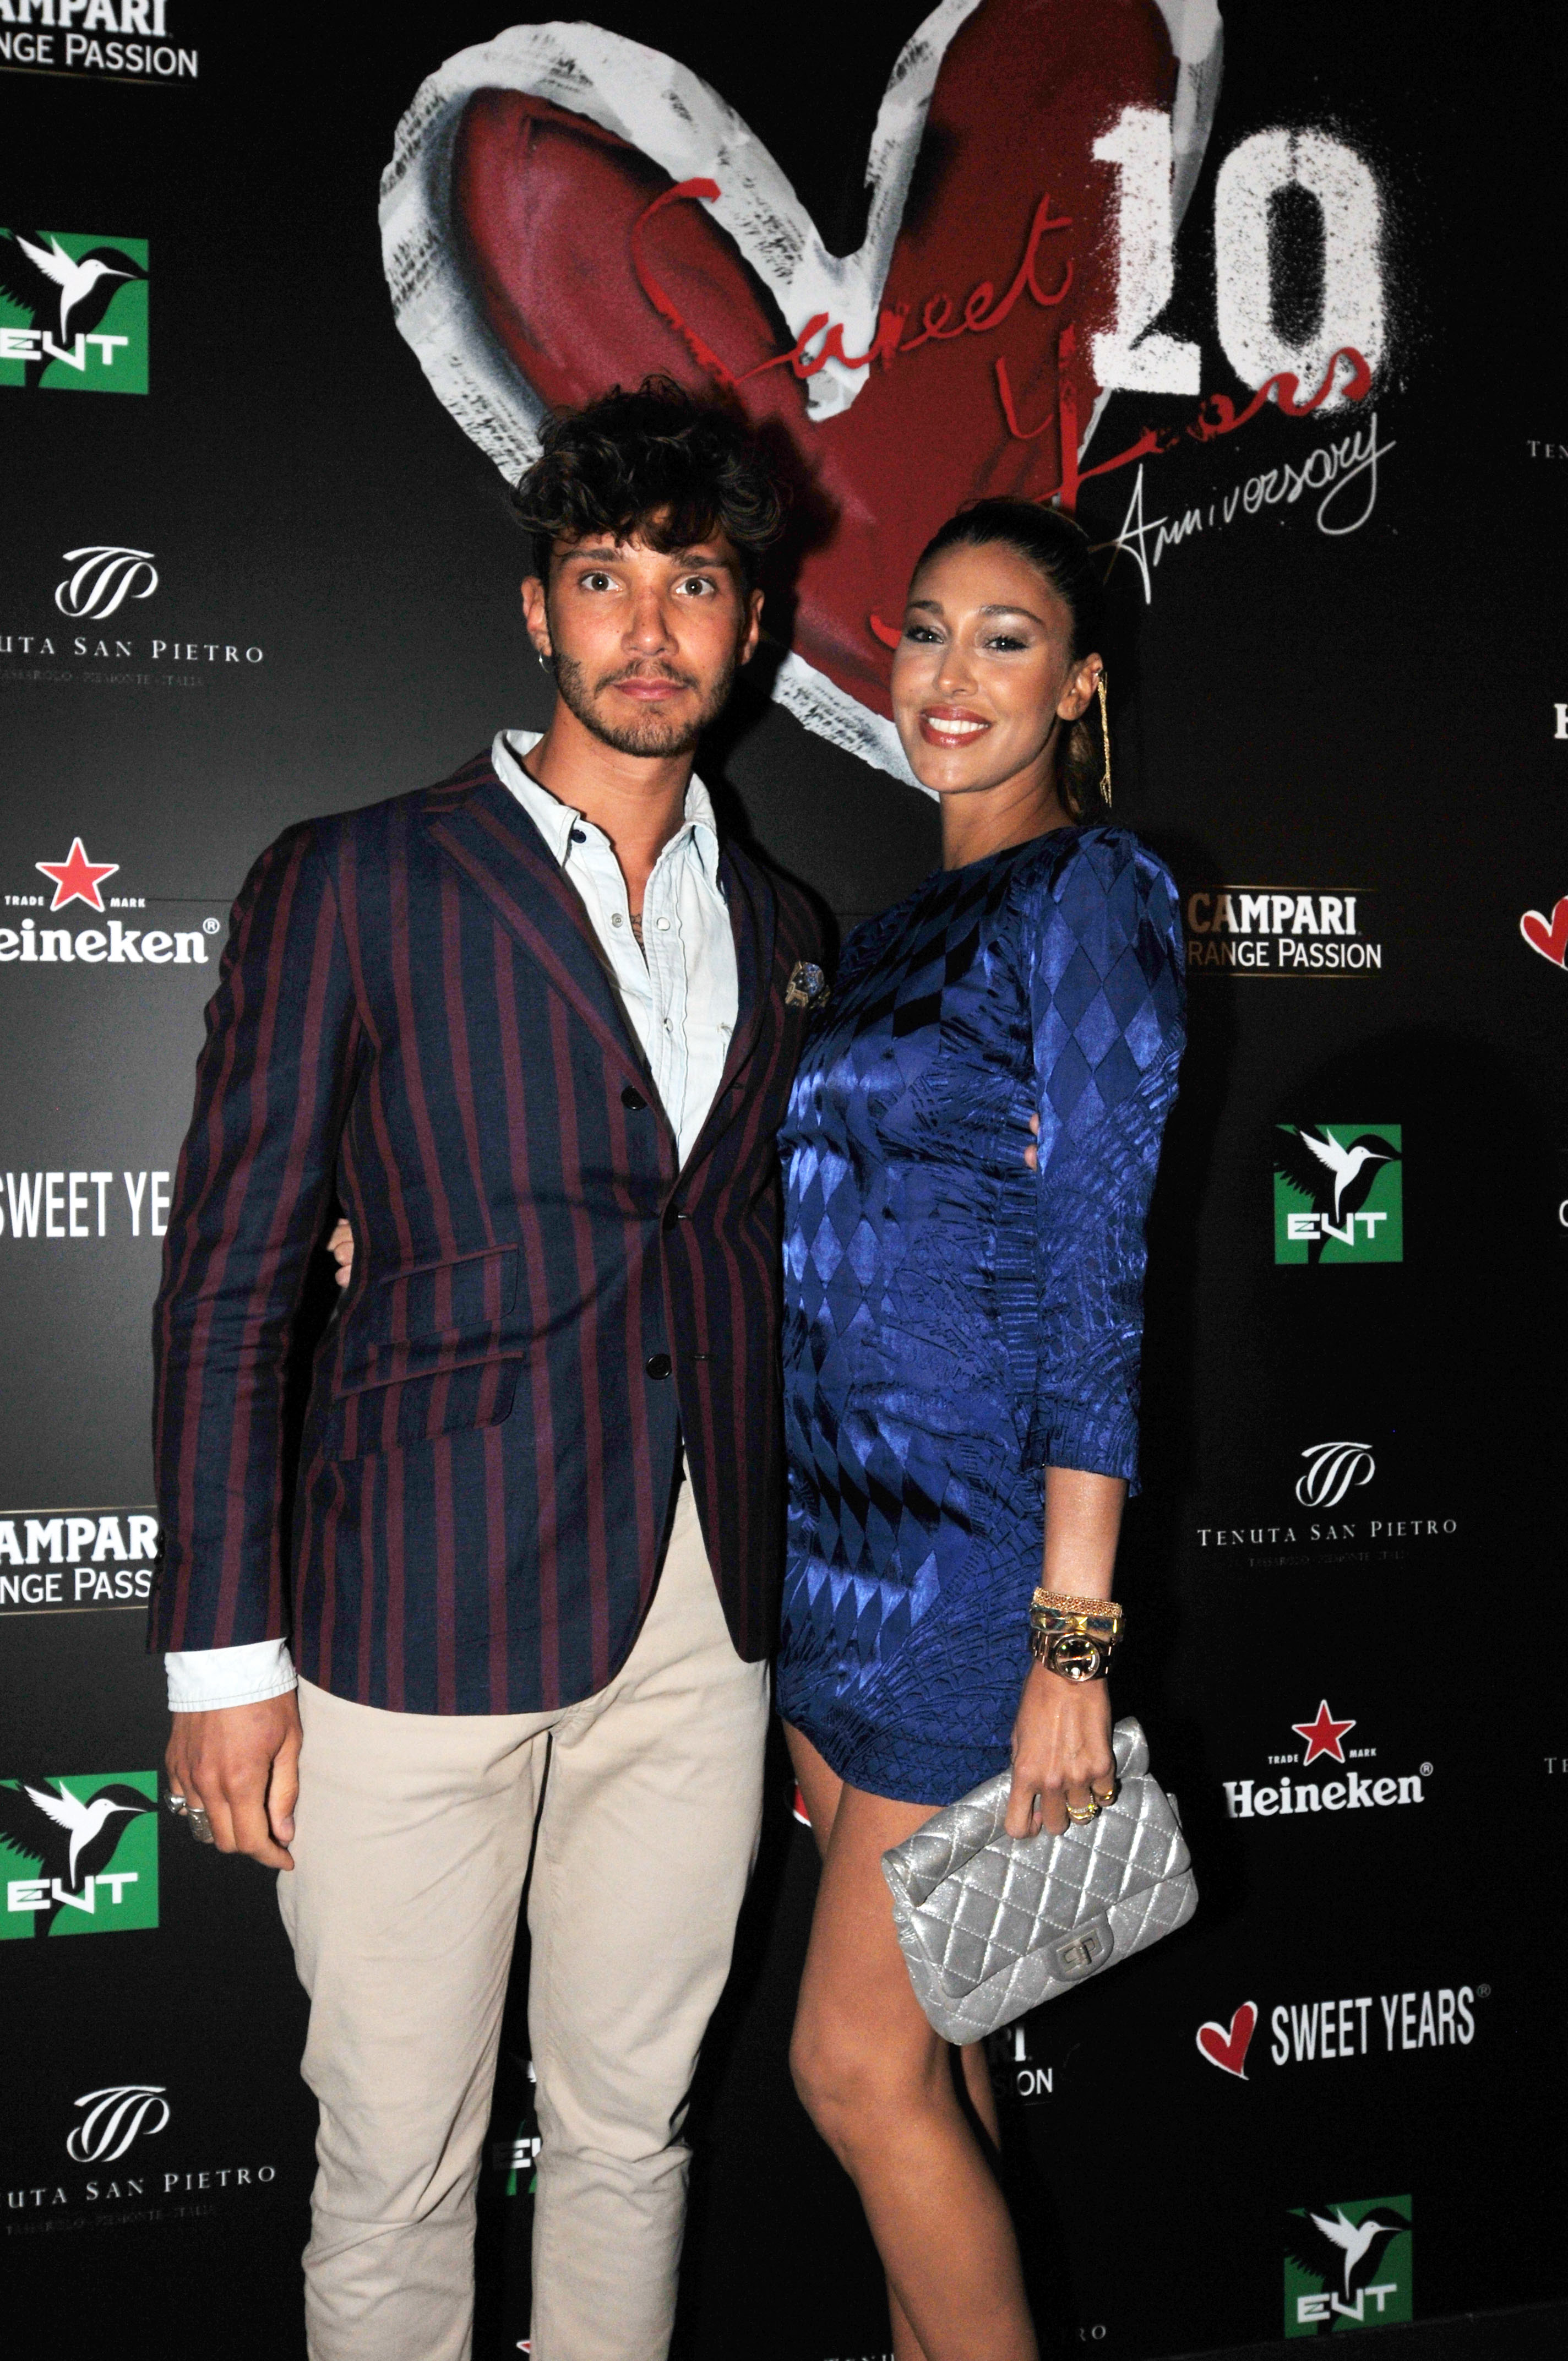 belen rodrigue e stefano demartino